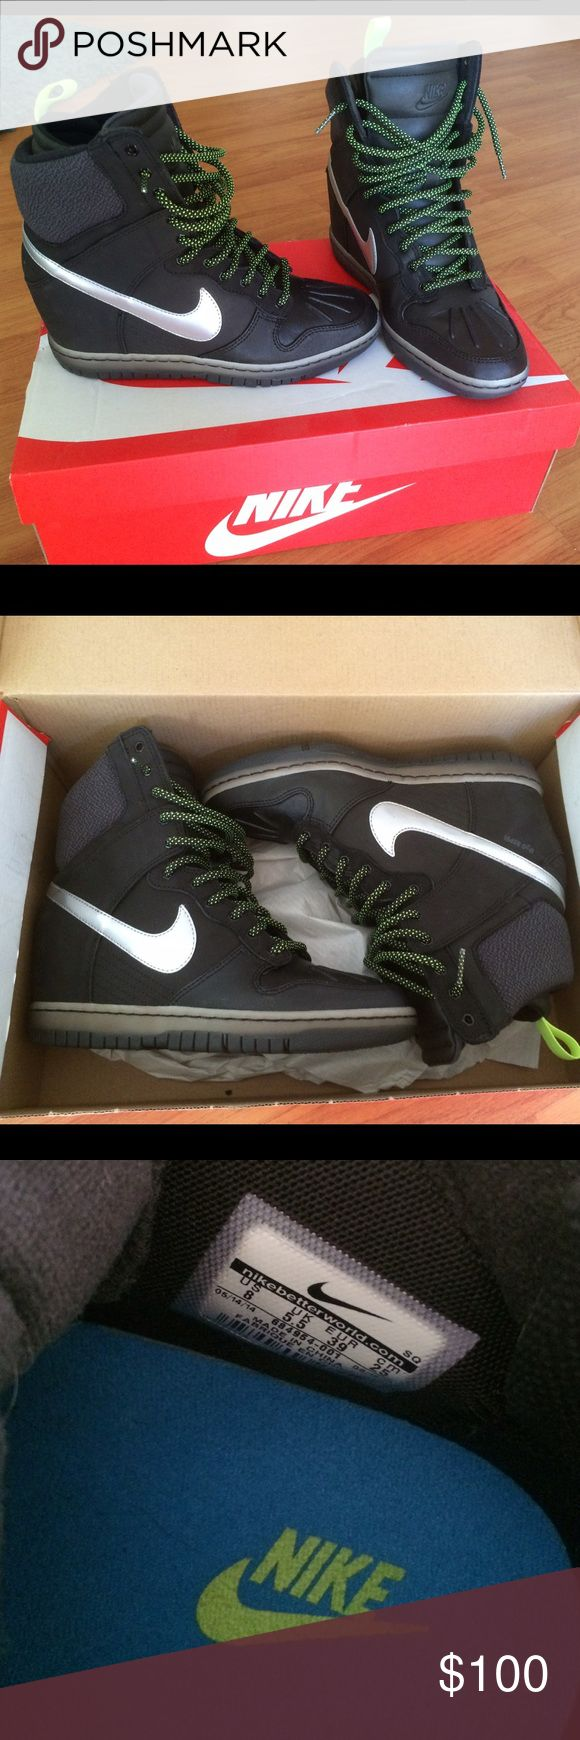 Nike dunk sky hi womens wedge sneakers Nike dunk sky hi womens wedge sneakers. Black with neon laces. Great condition, worn maybe 5 times. No wear and tear. Still have the box as well! Nike Shoes Athletic Shoes